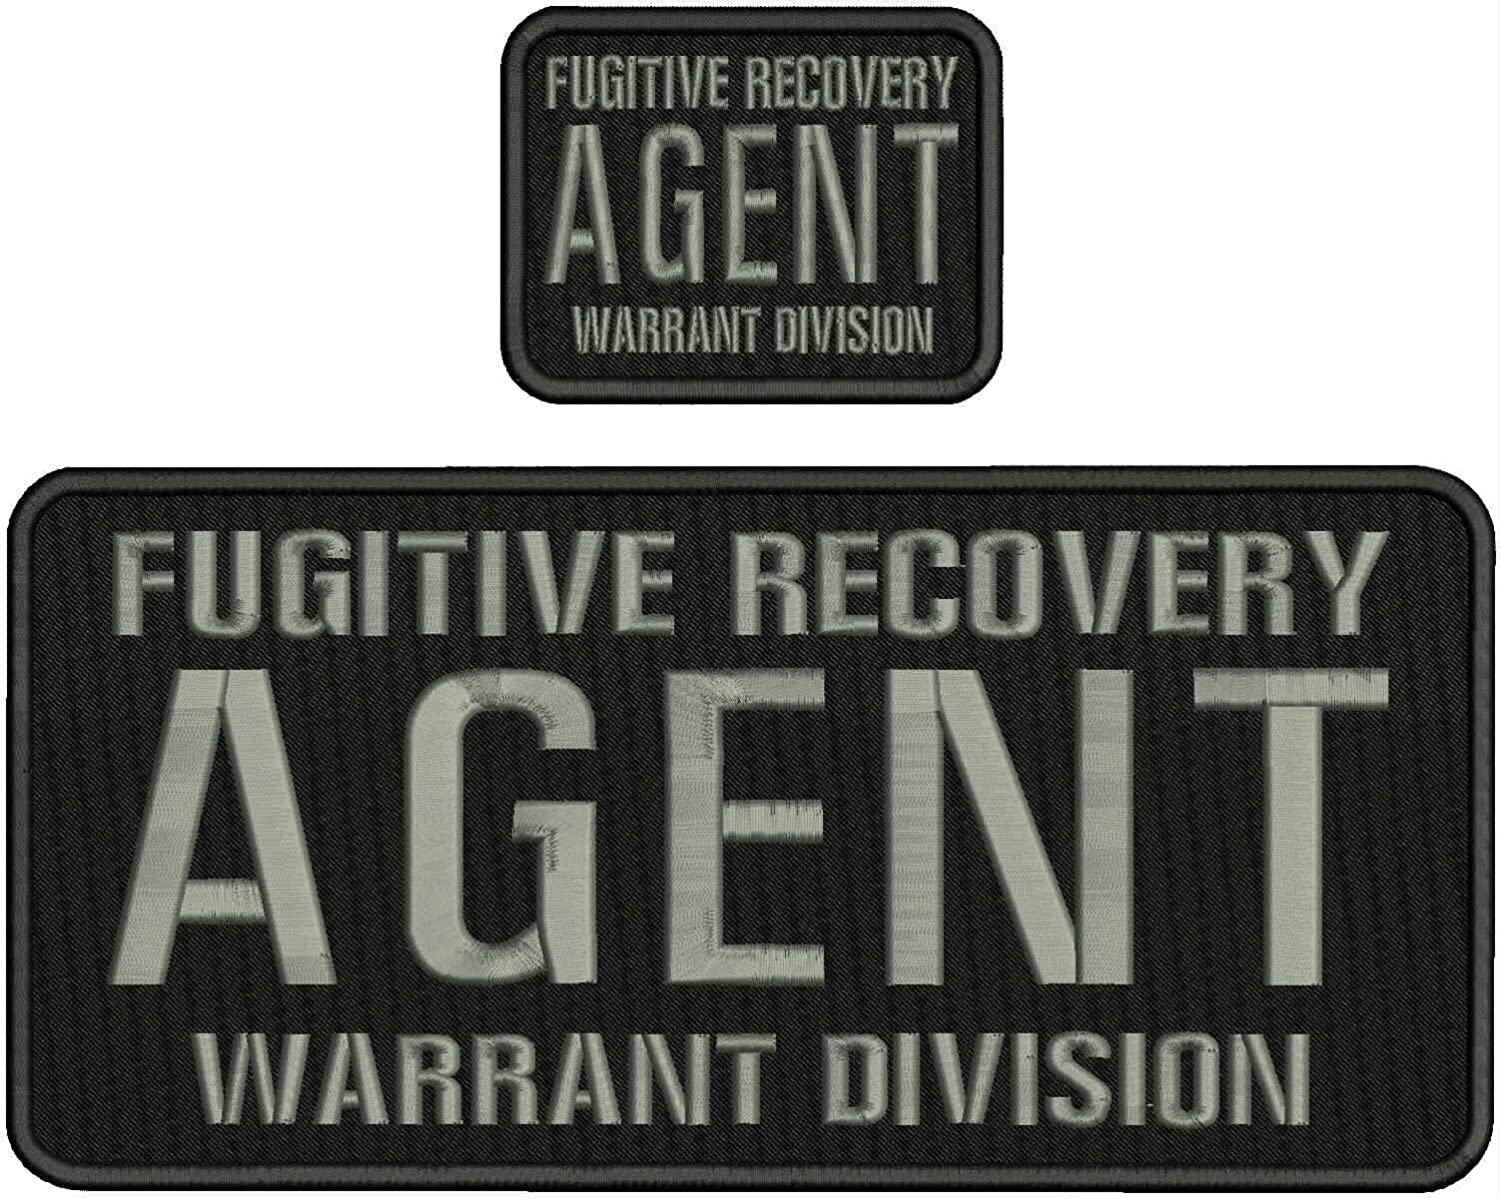 Fugitive Recovery Our shop most popular Agent Warrant Division 3x4 Hoo EMB 5.5x12 PAT OFFicial mail order